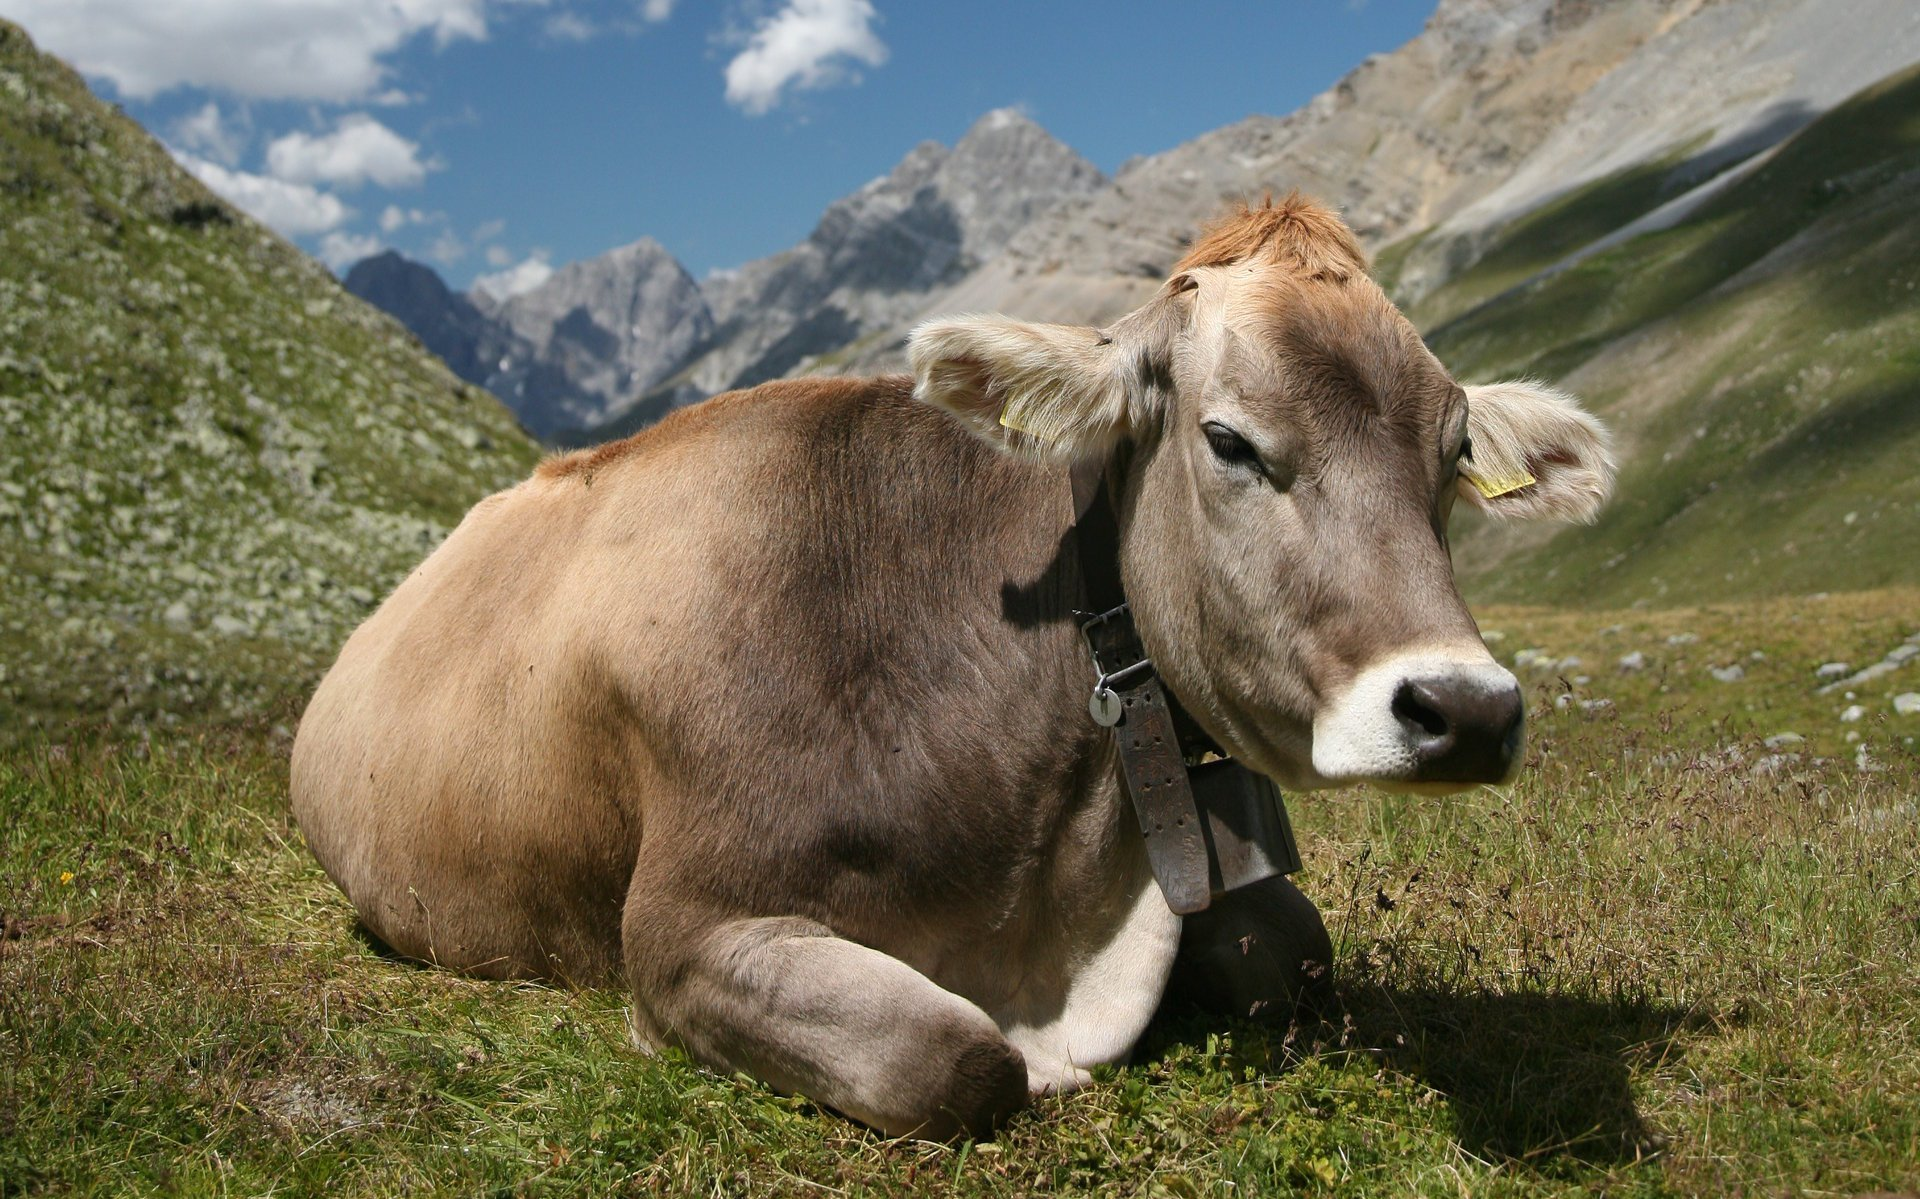 180 Cow HD Wallpapers | Background Images - Wallpaper Abyss